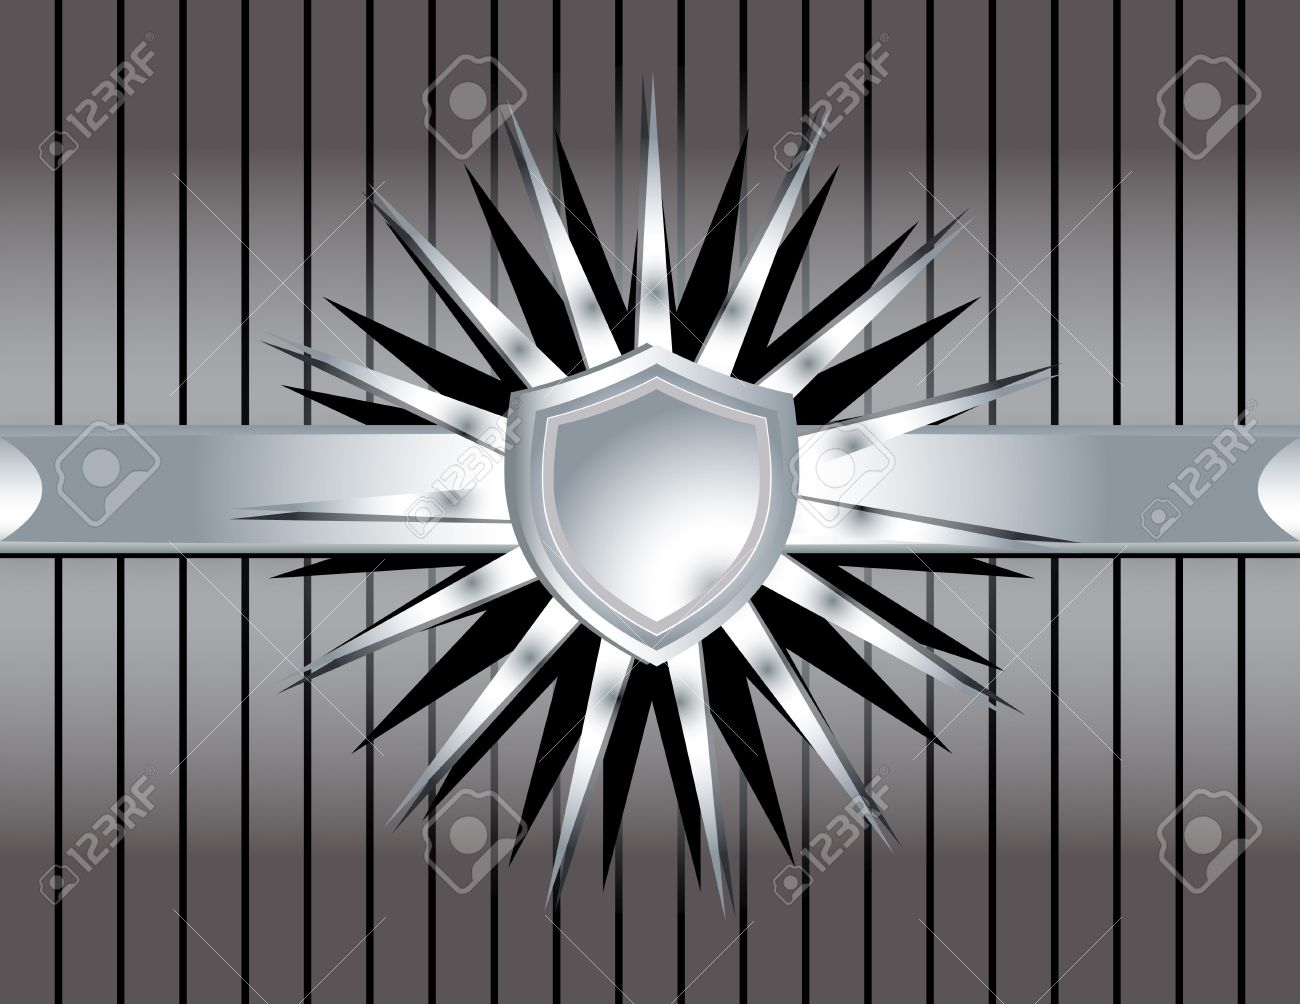 A silver metallic shield with spiky rays on a gray striped background Stock Vector - 7315161